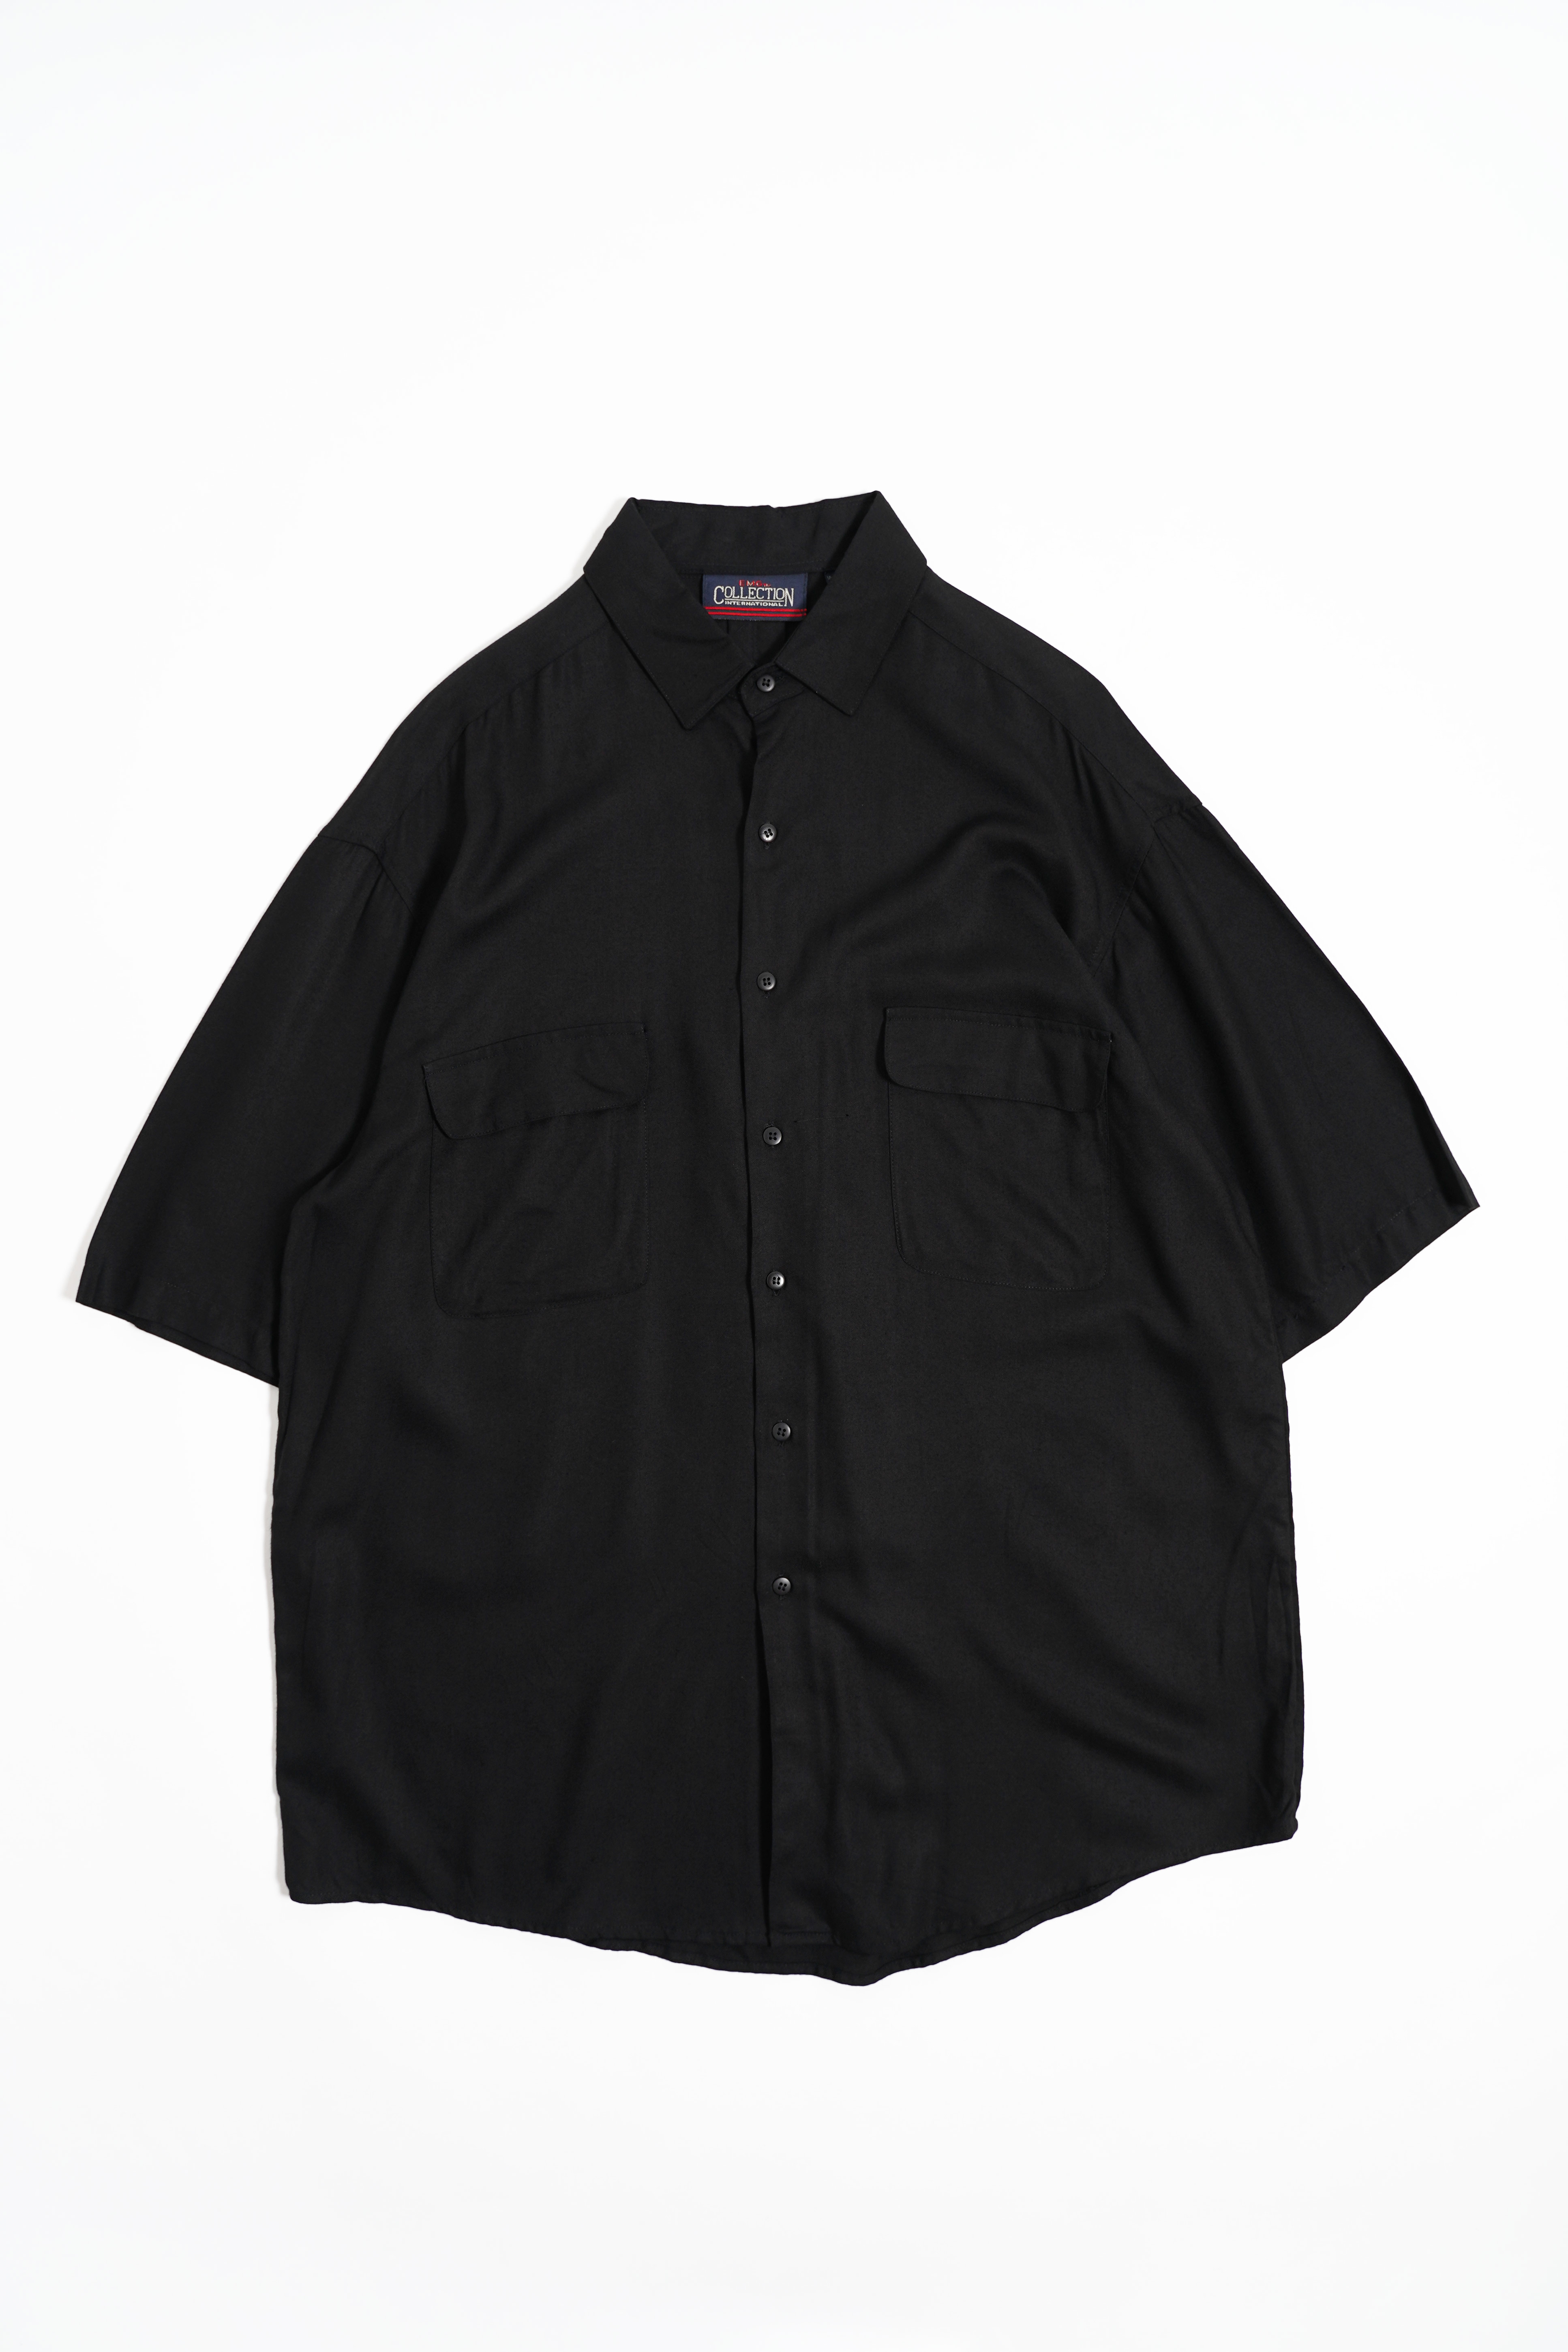 S/S RAYON SHIRTS OVER SILHOUETTE